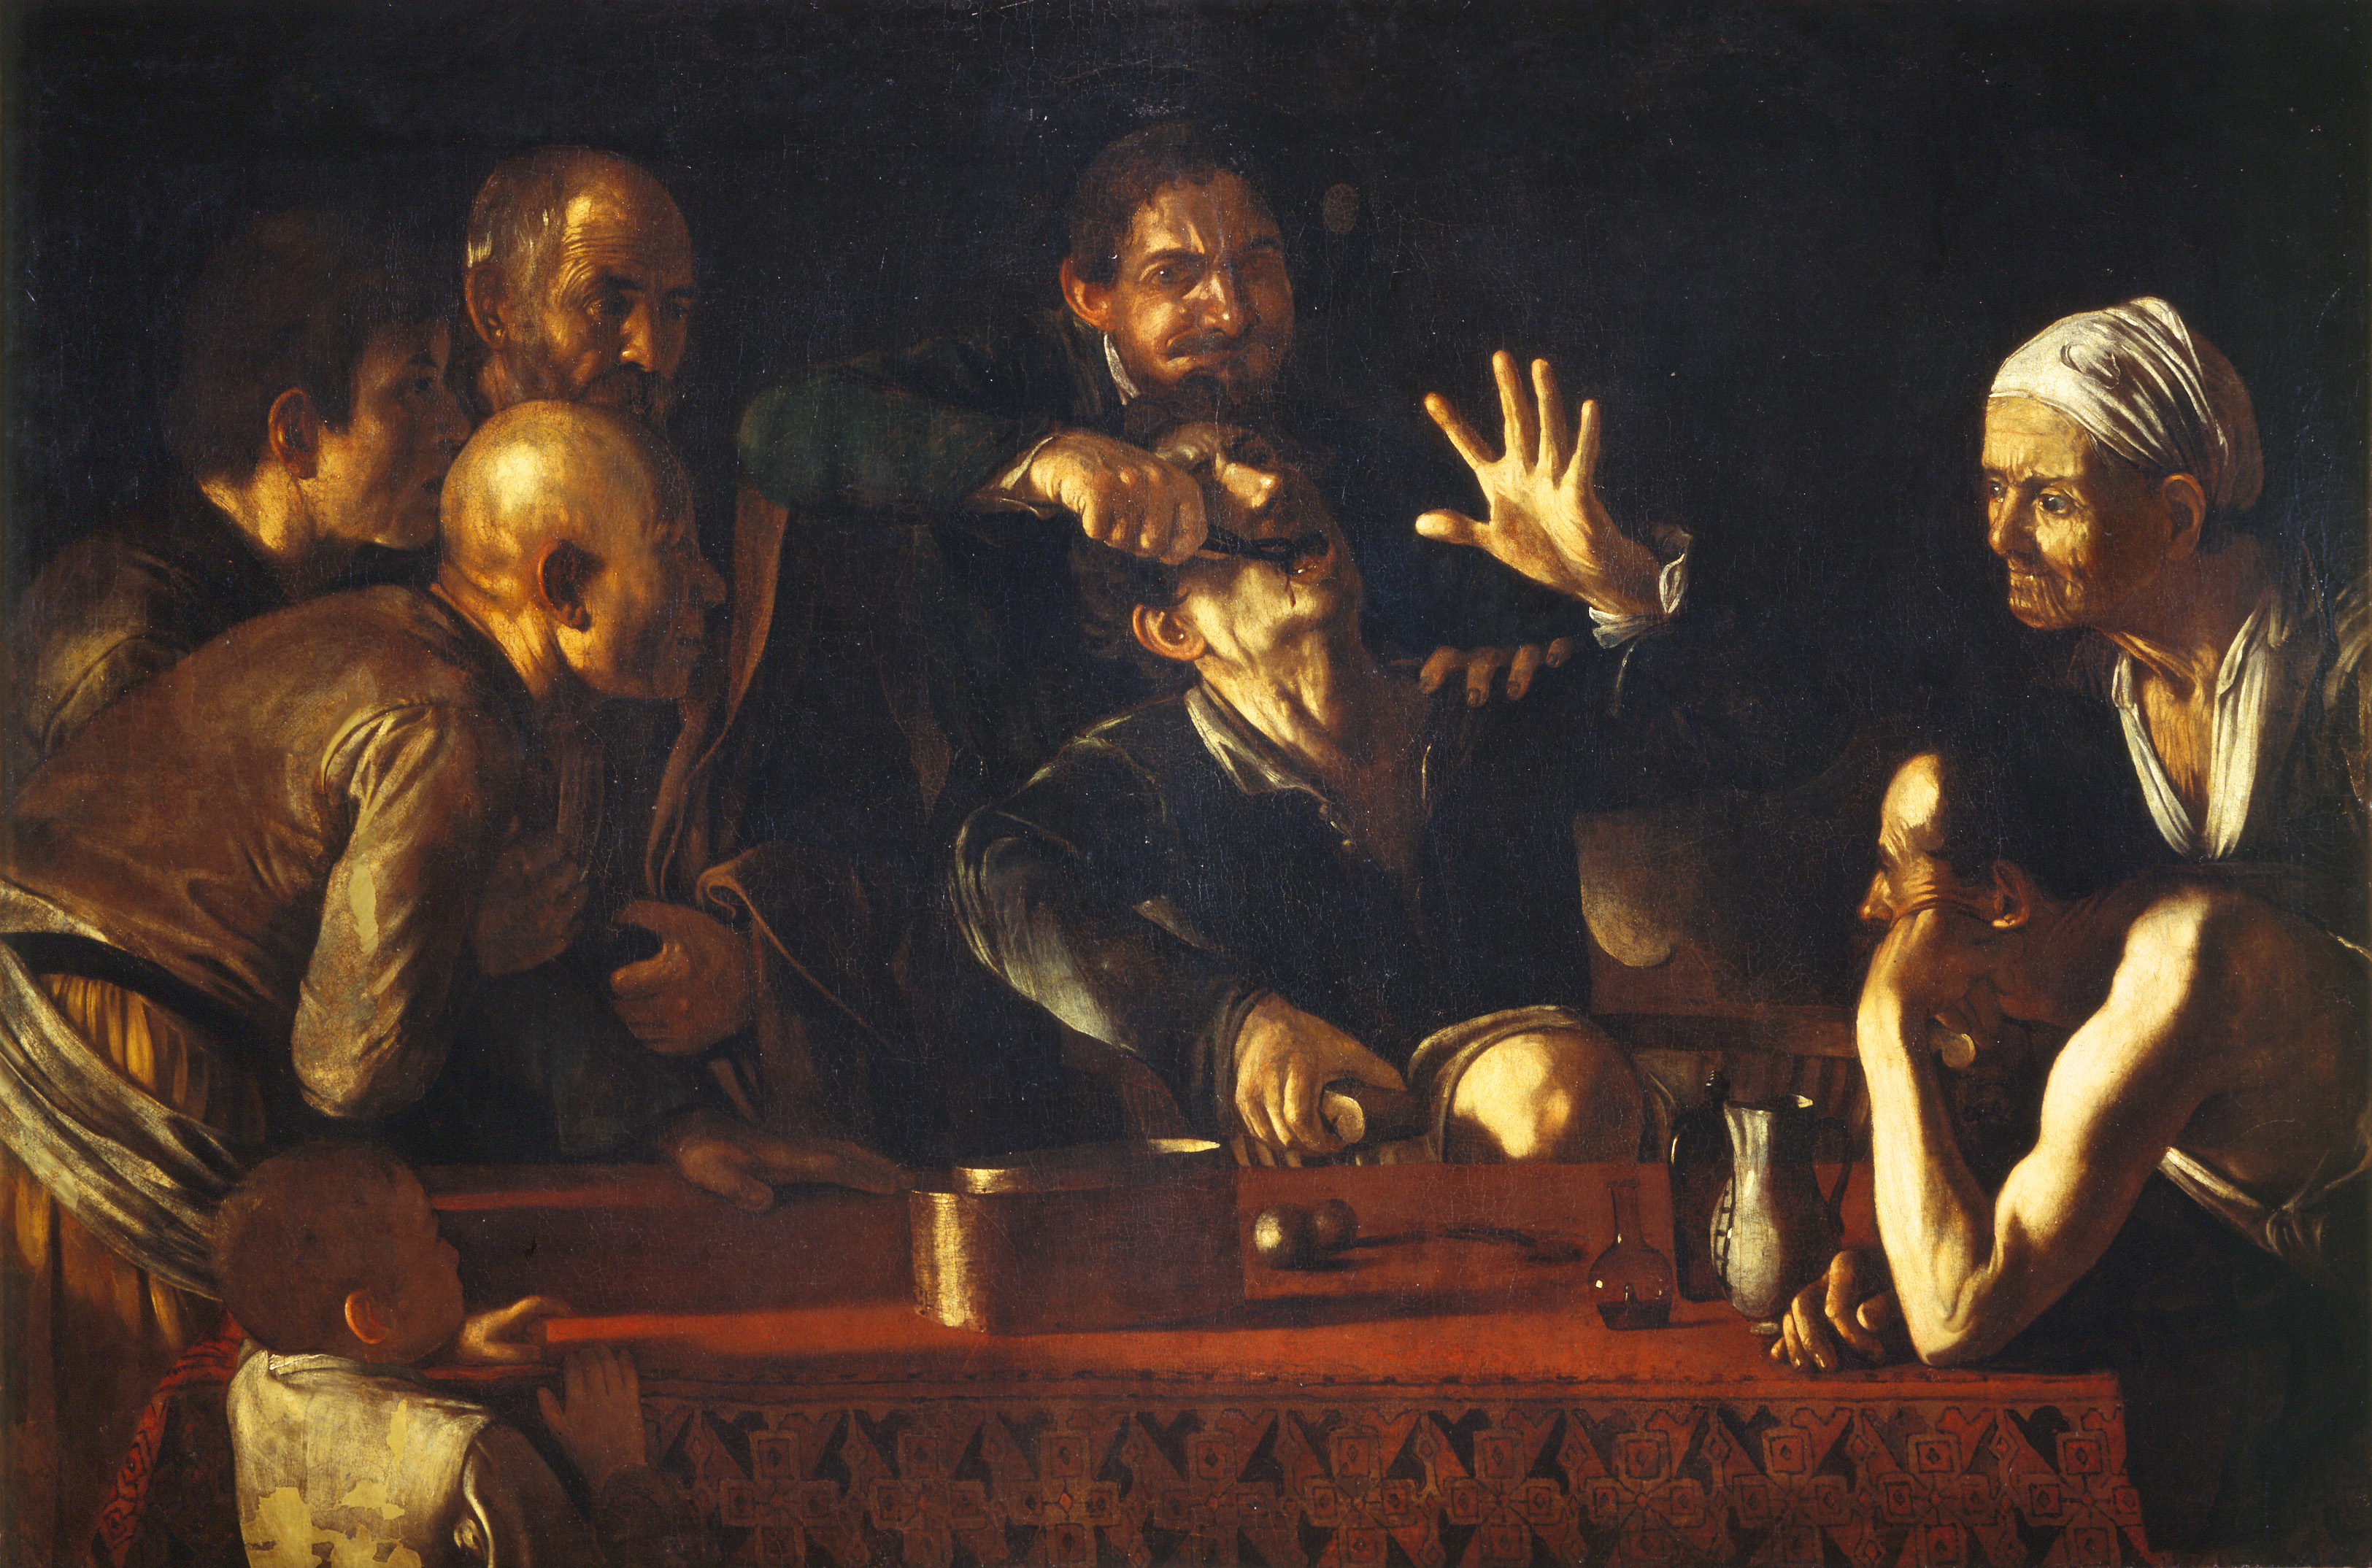 the life and violence of famous artist caravaggio Famous people in art famous people named caravaggio biography caravaggio: a life sacred and profane, the artist's was not the end of his violence.